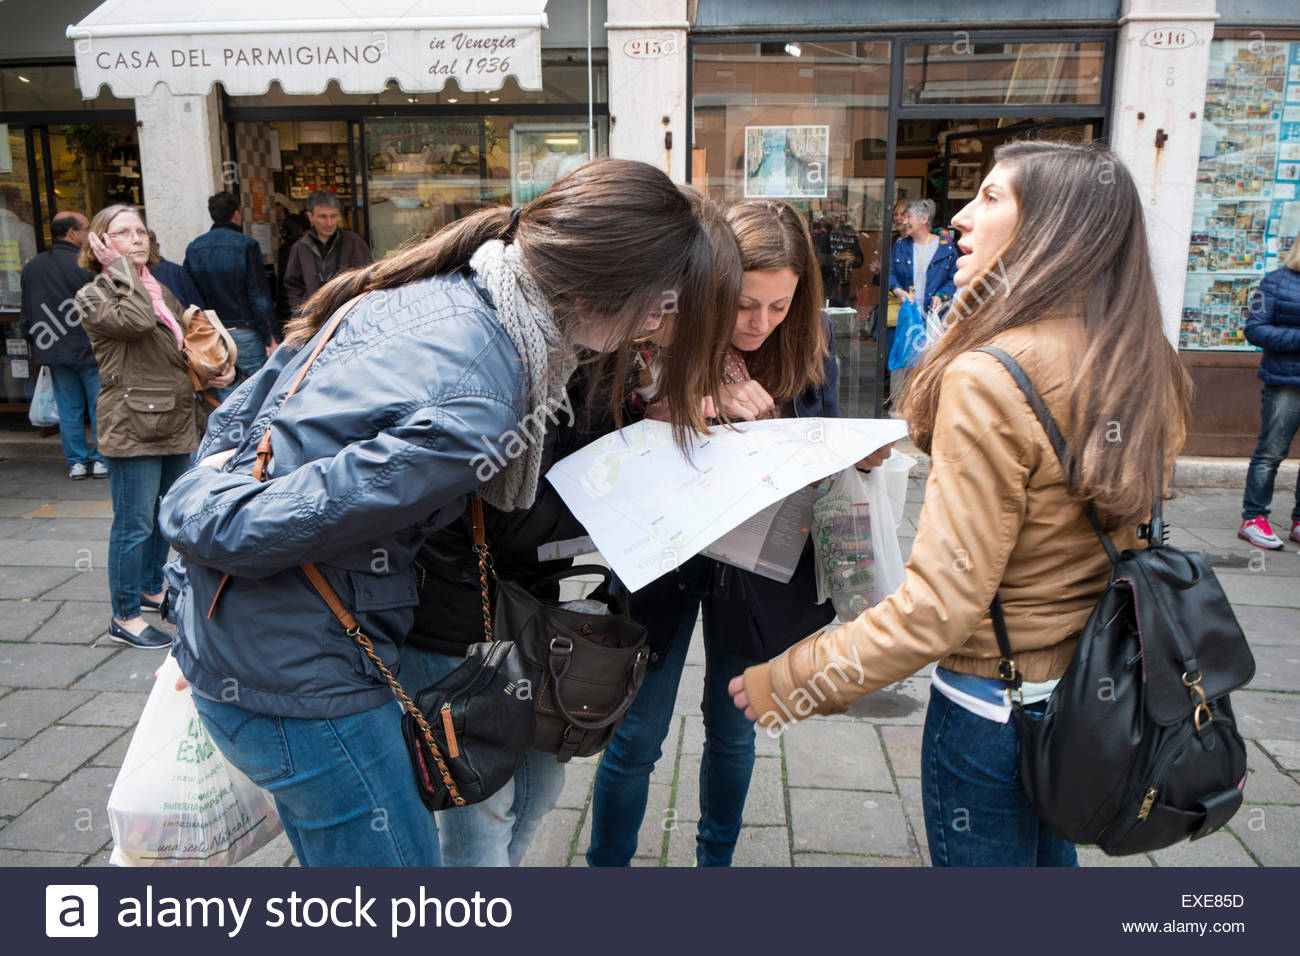 Female Tourists Looking at Map in San Polo, Venice, Italy - Stock Image